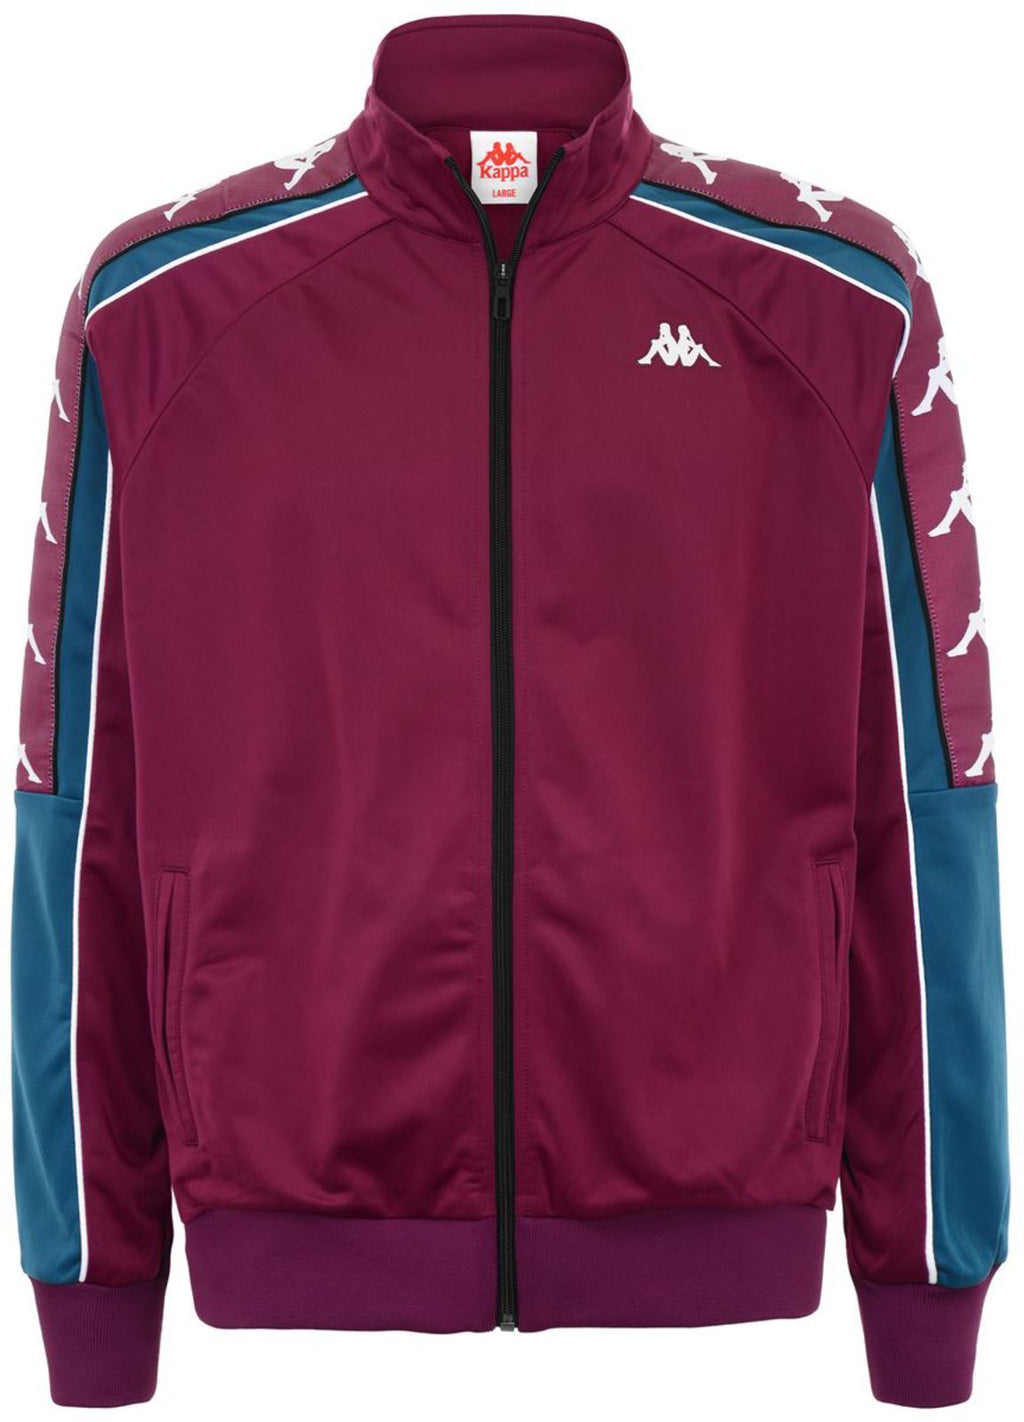 Kappa Ahran Zip Front Track Top Burgundy/Blue/White